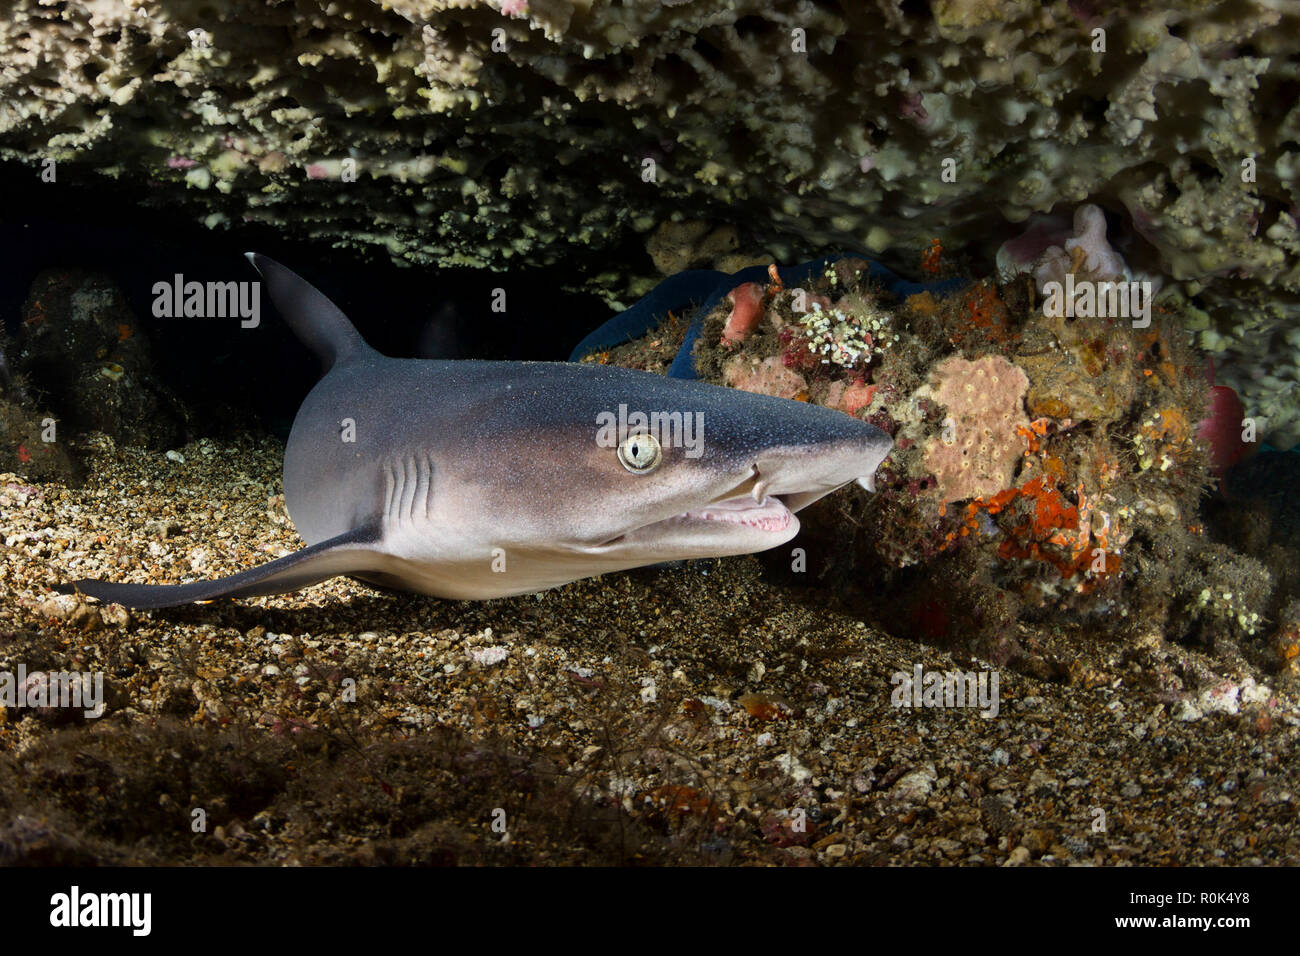 Portrait of a whitetip reef shark from Bali, Indonesia. Stock Photo